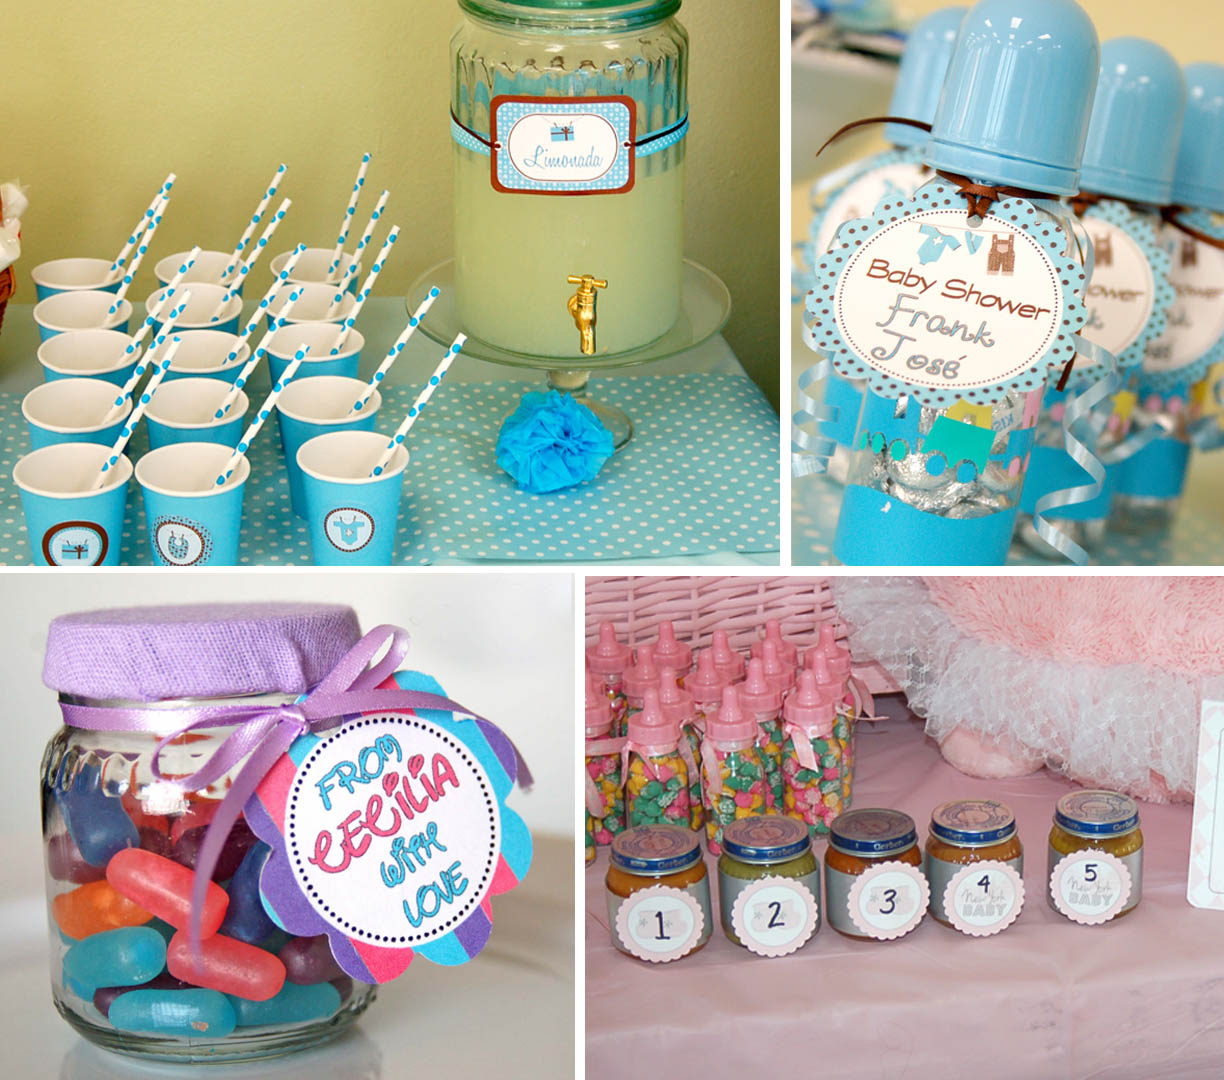 Little things creations ideas de fiesta etiquetas circulares - Ideas decoracion bebe ...